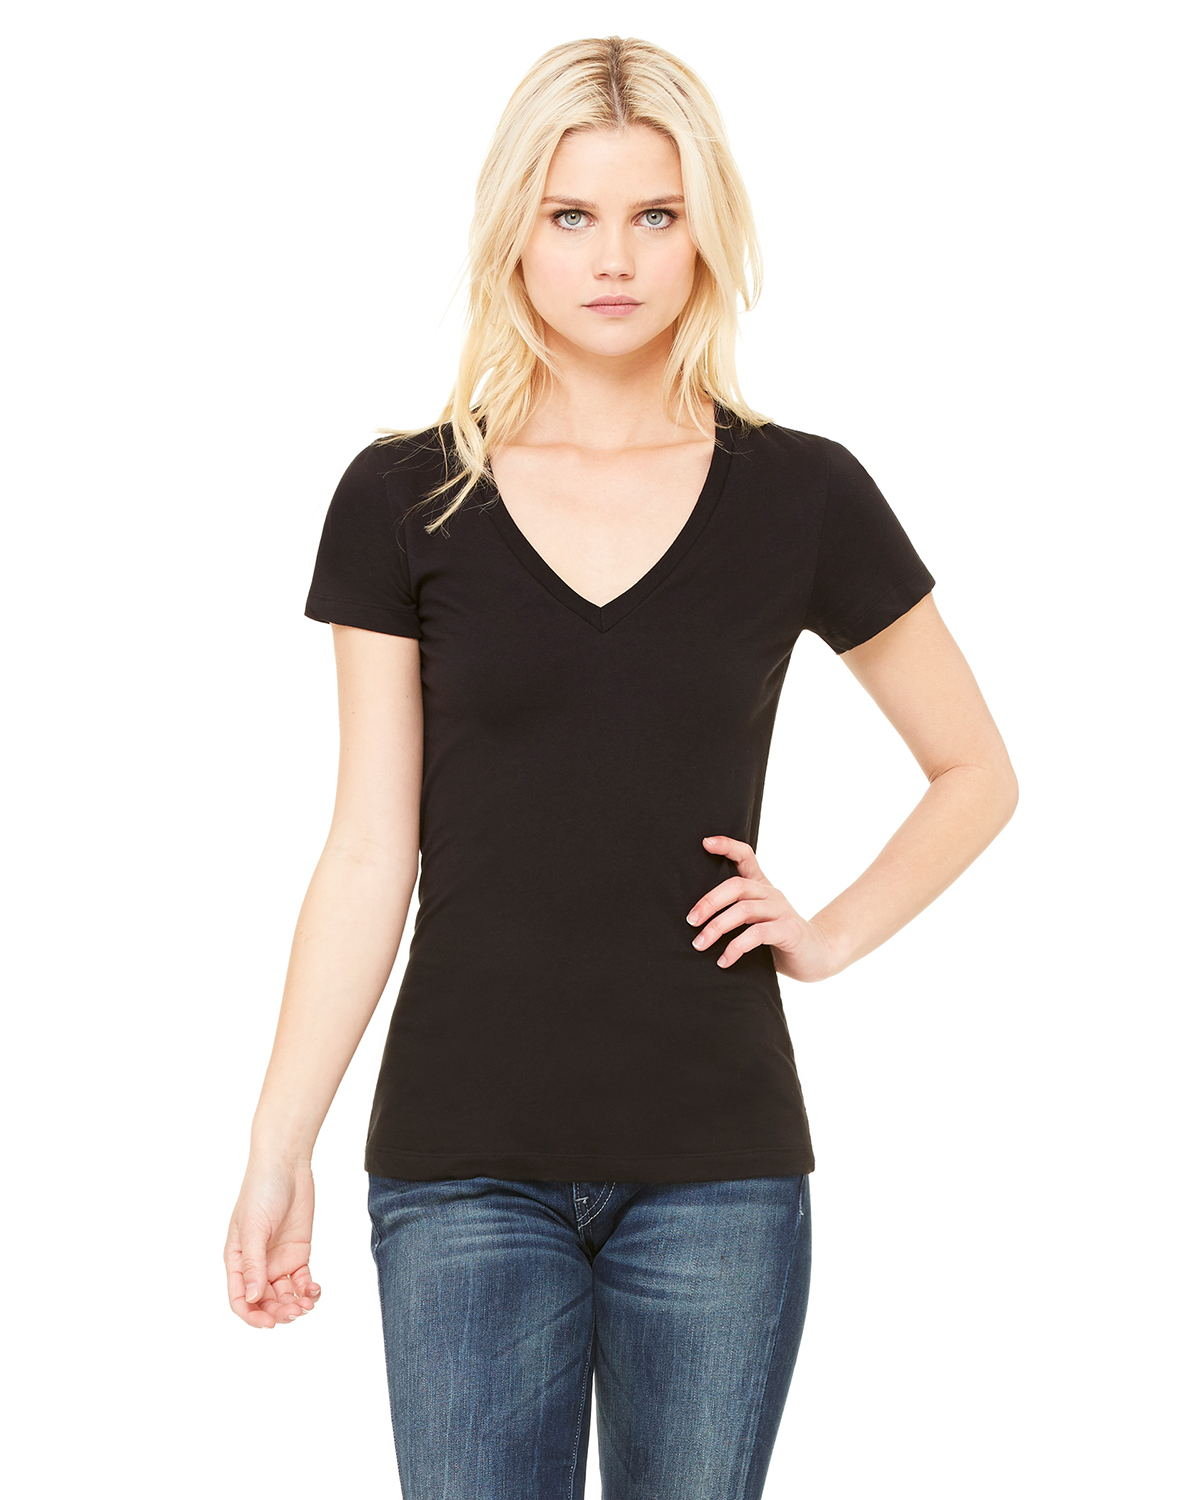 Bella B6035 Ladies 4.2 oz. Jersey Deep V